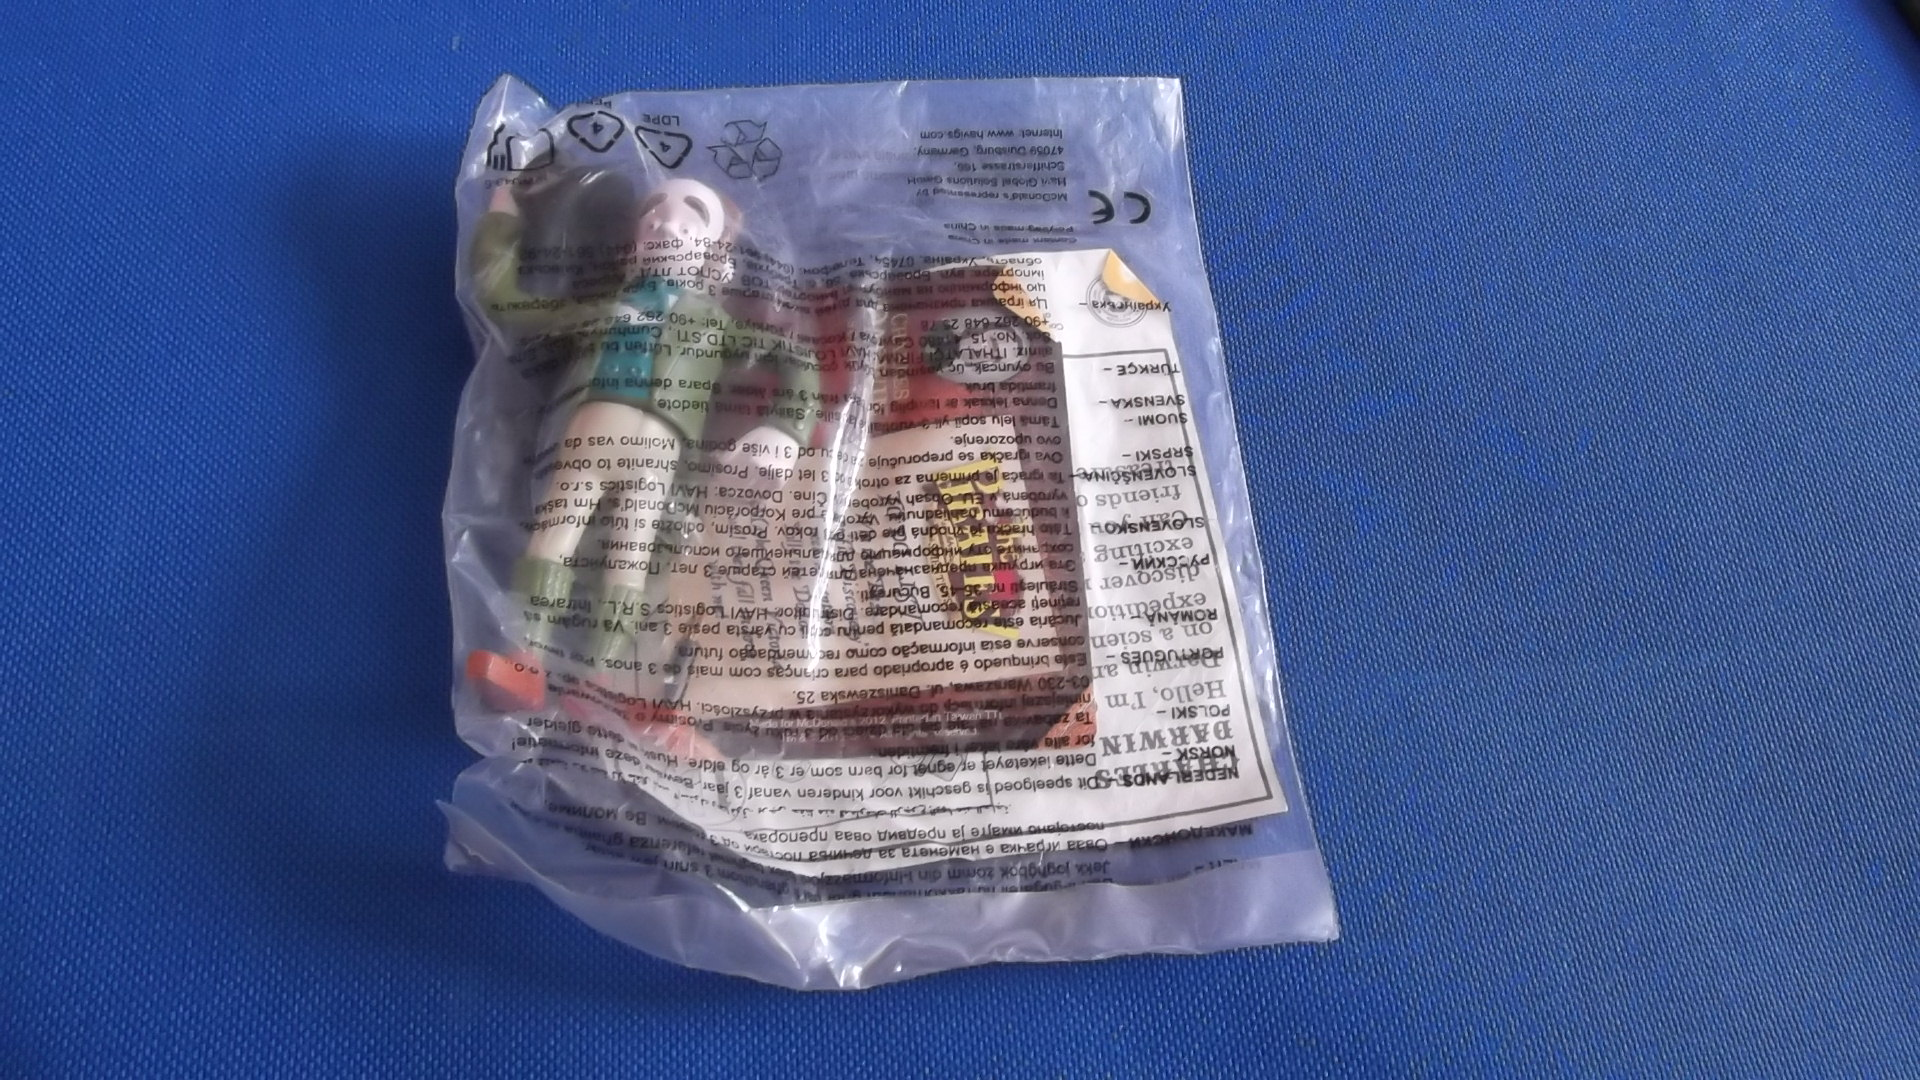 McDonalds The Pirates In An Adventure With Scientists Charles Darwin Toy From 2012 New